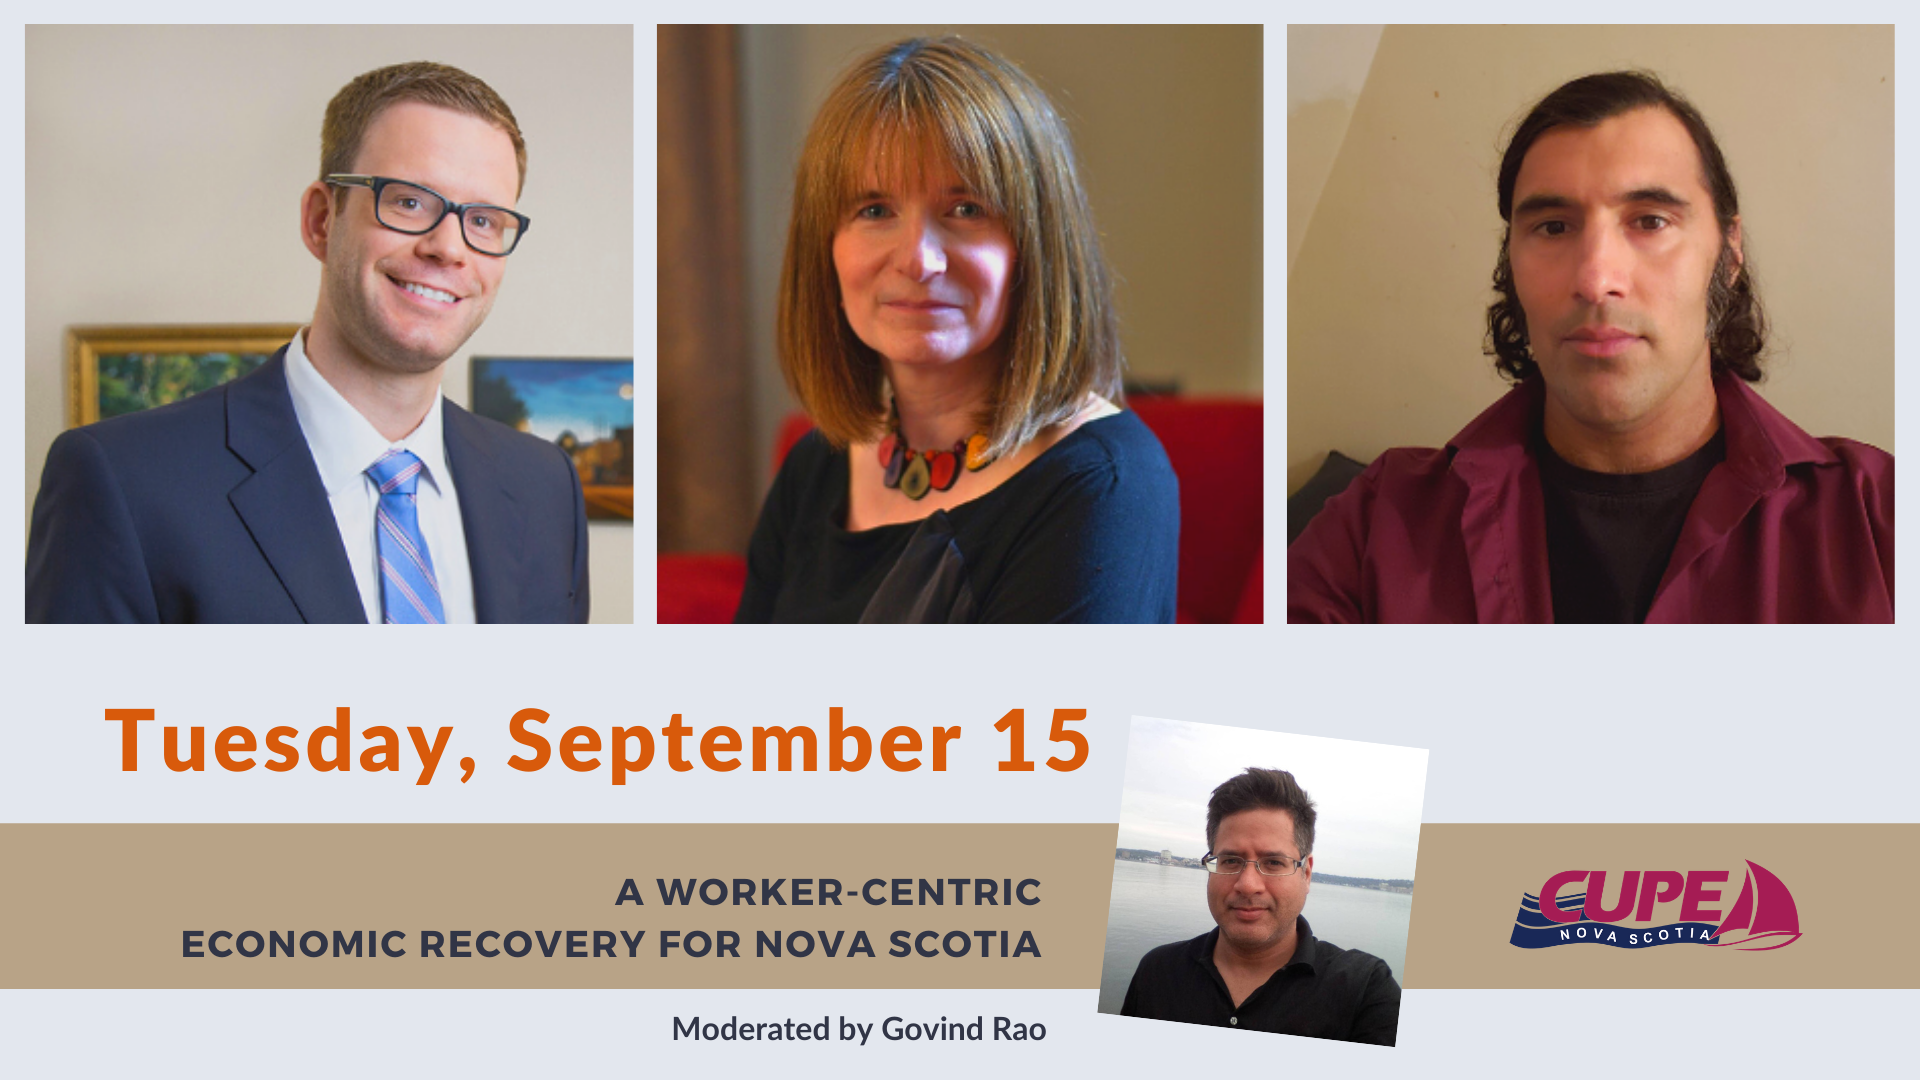 web banner - Webinar: A Worker-Centric Economic Recovery for Nova Scotia. Photos of three panelists and the moderator. Date: Tuesday, September 15